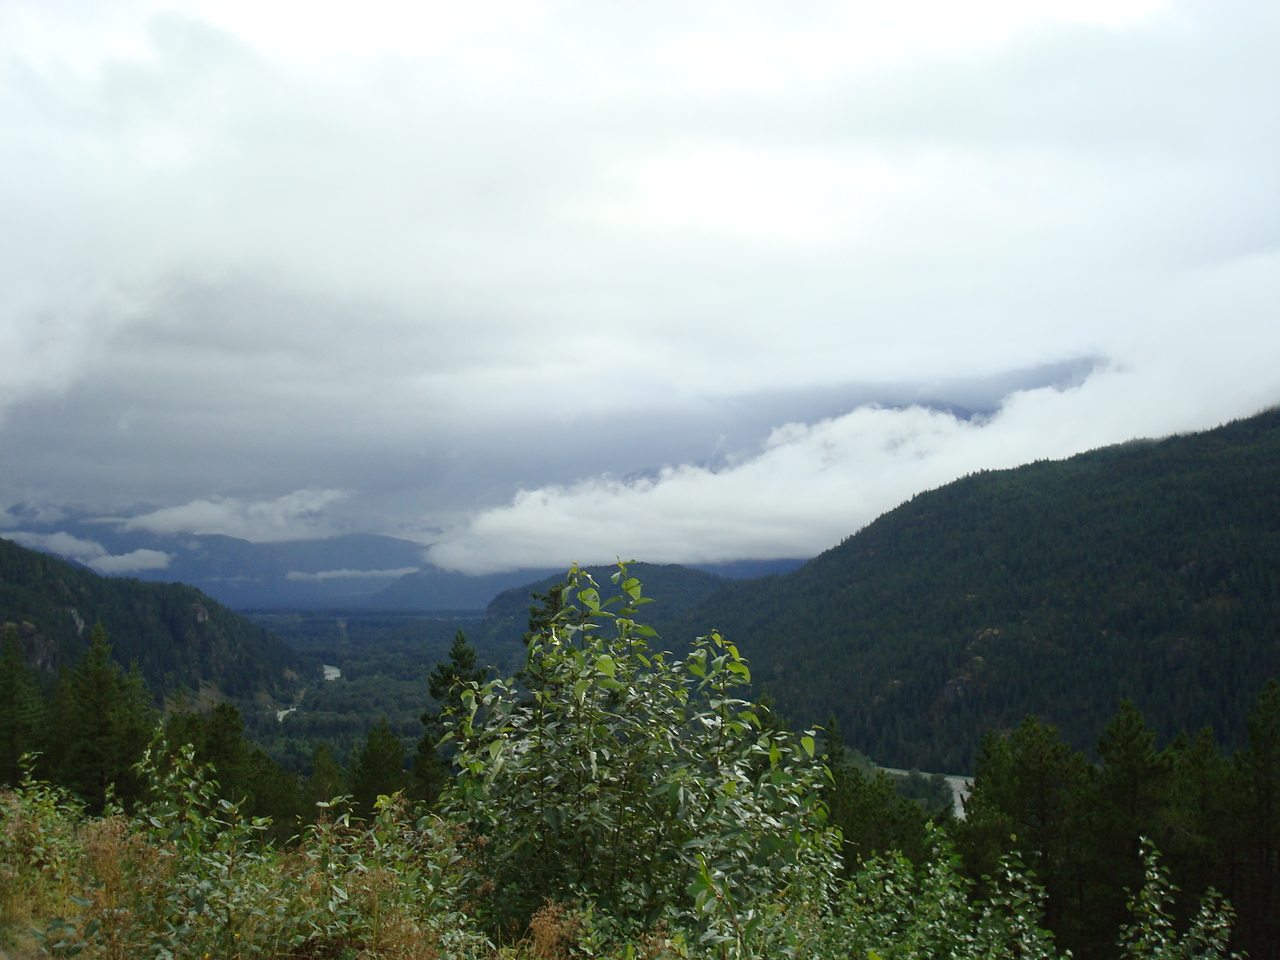 Somewhere between Whistler and Vancouver